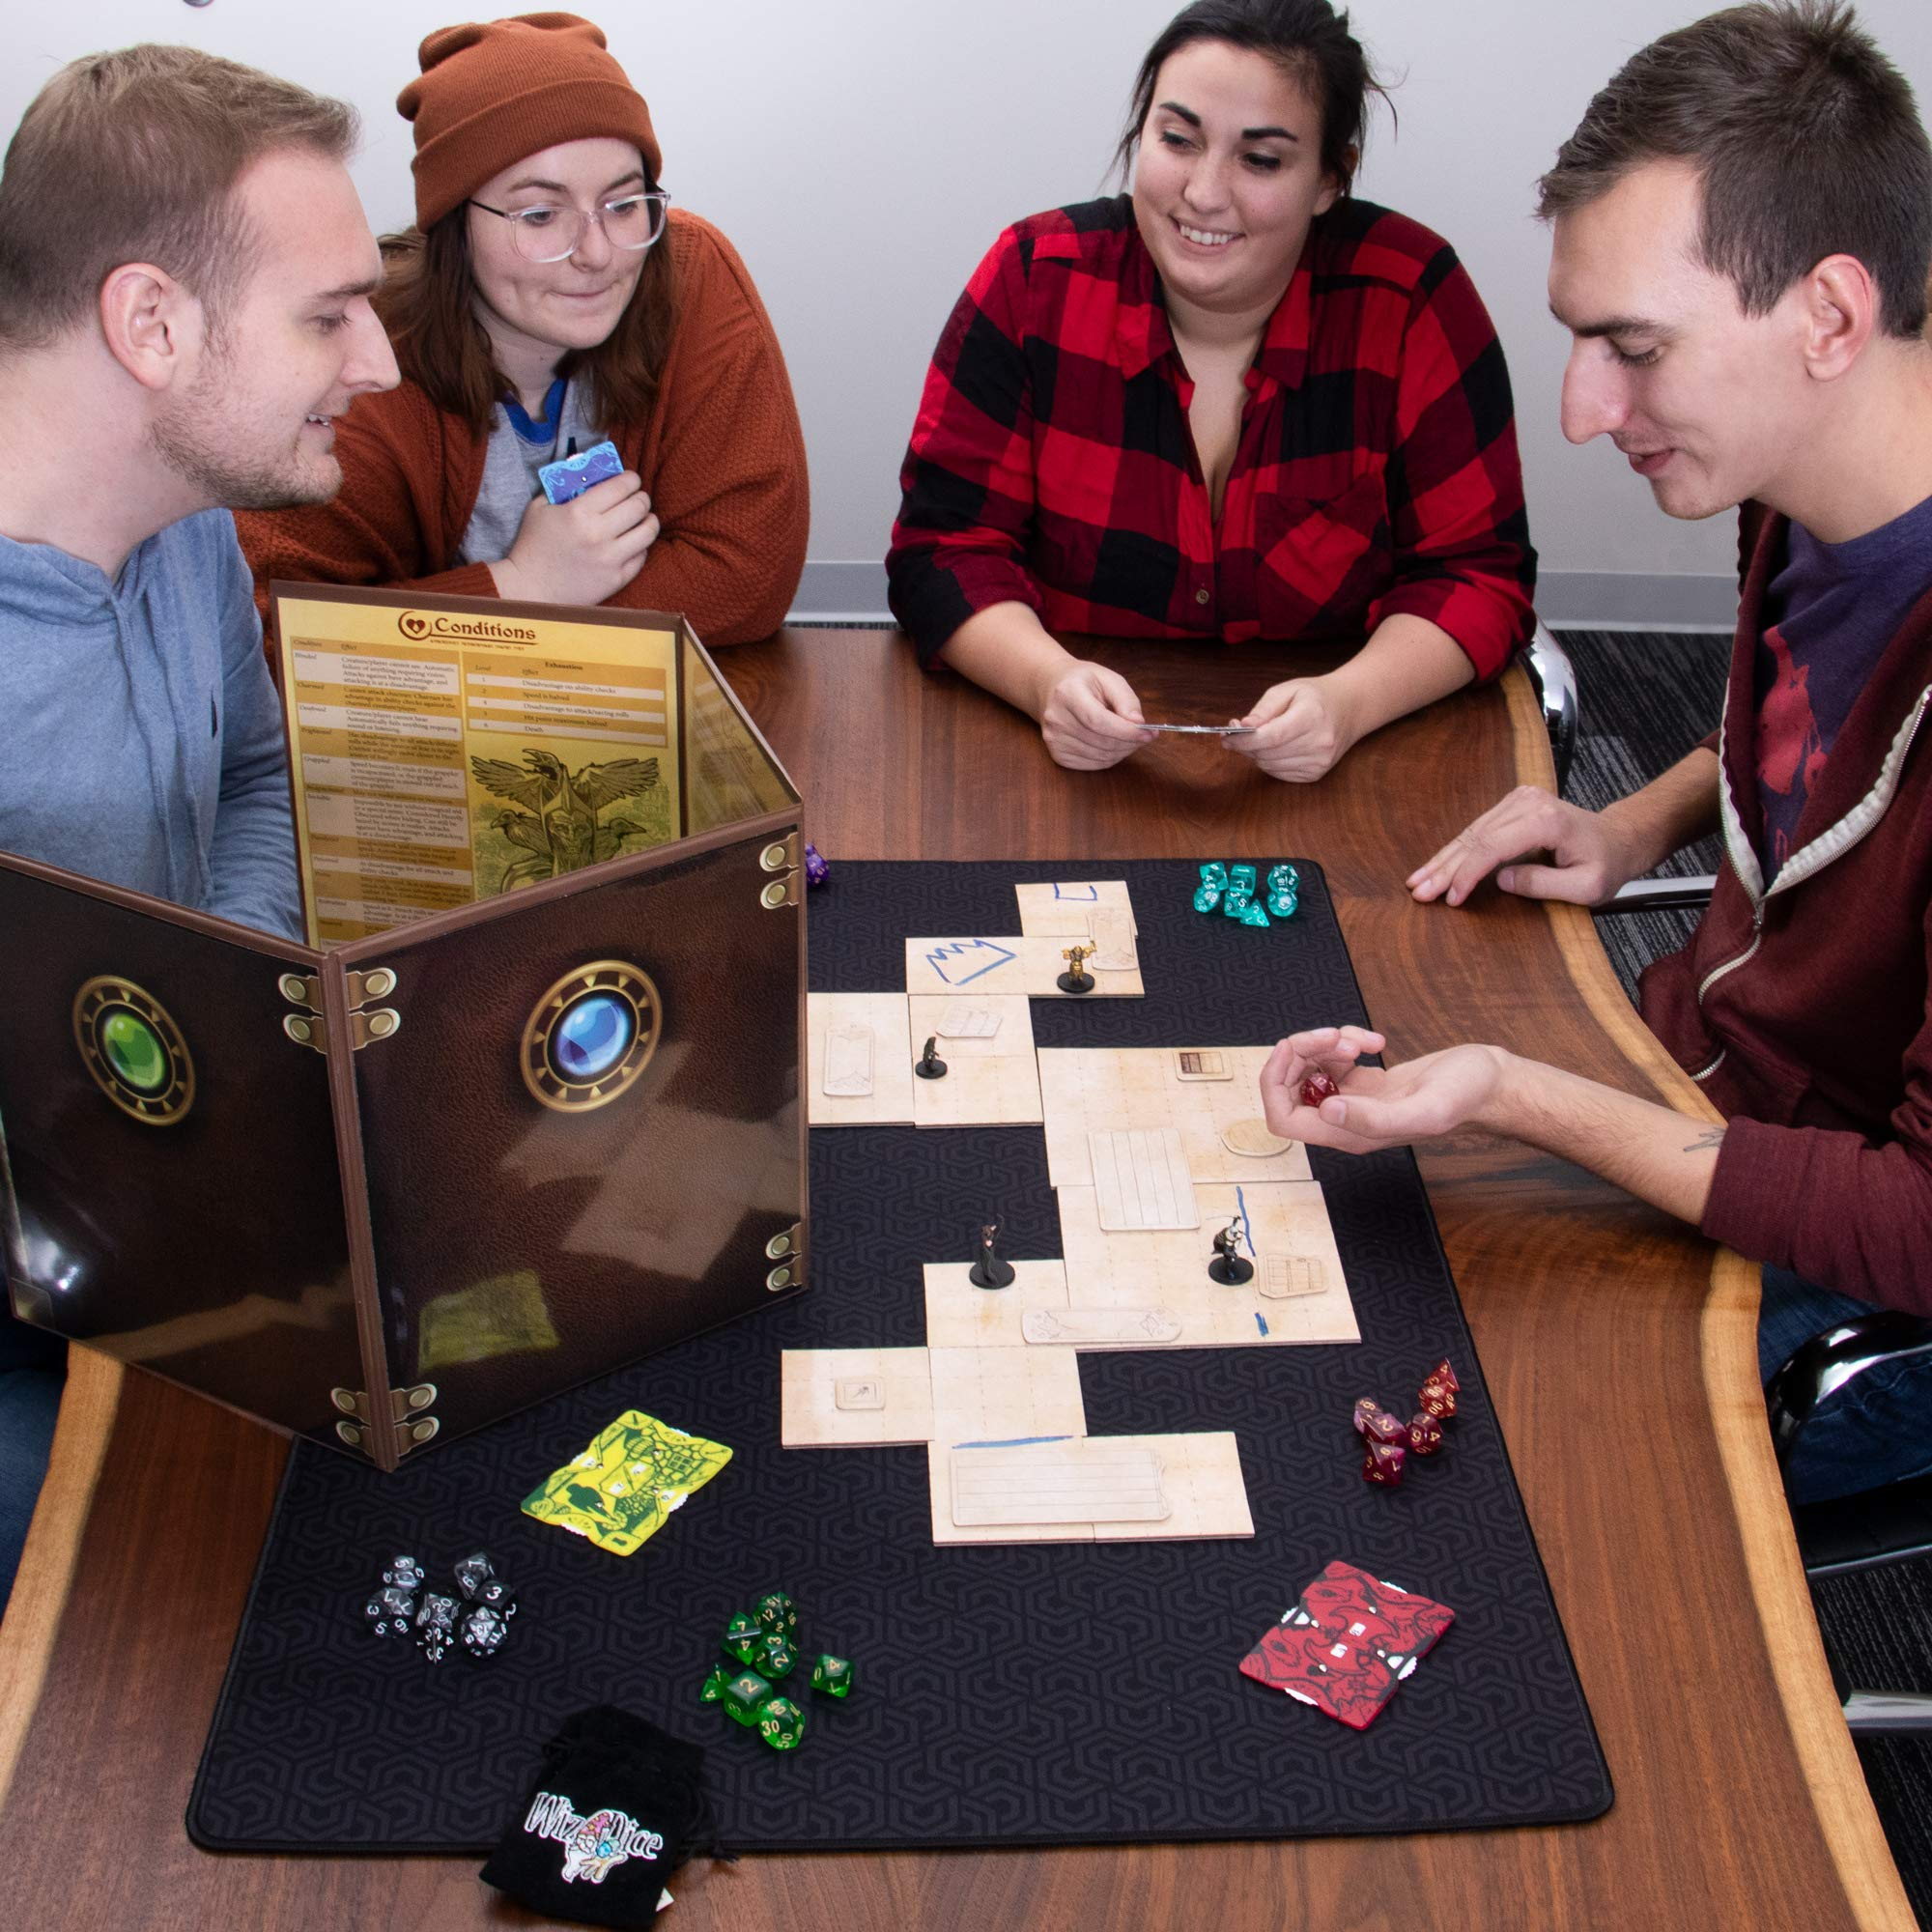 Dungeon Master Essentials: Roleplaying Starter Kit | Customizable GM Screen, 44 Reversible Map Tiles, 5 Character Health Trackers, 5 Polyhedral Dice Sets | Tabletop Fantasy Game Beginner Accessories by Stratagem (Image #6)